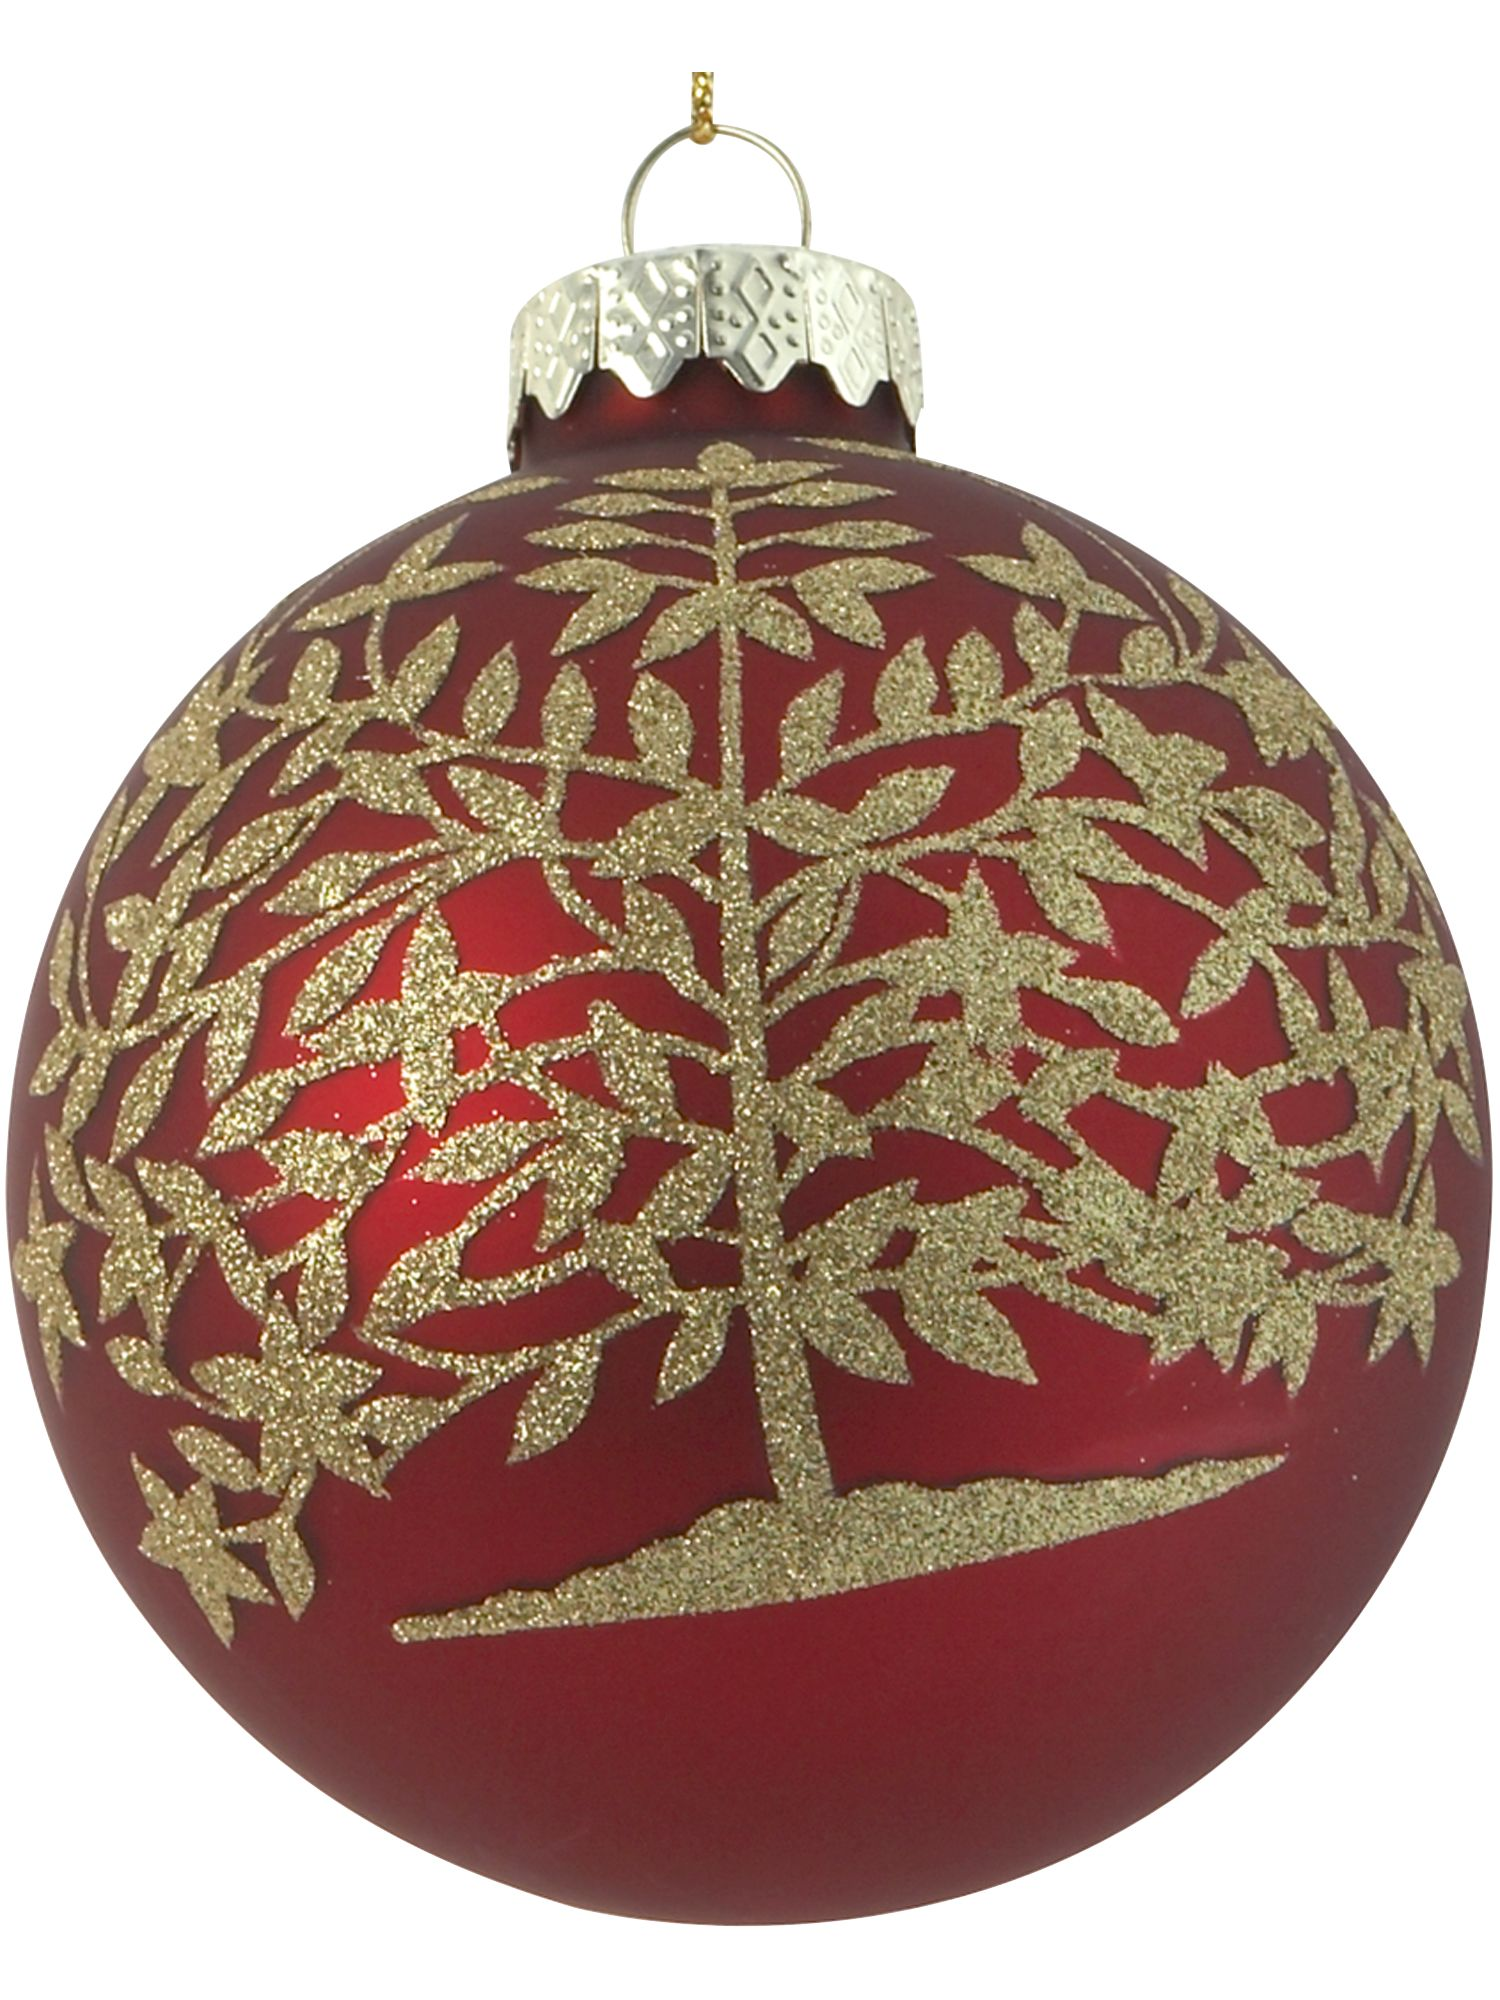 Nostalgia red bauble with gold tree